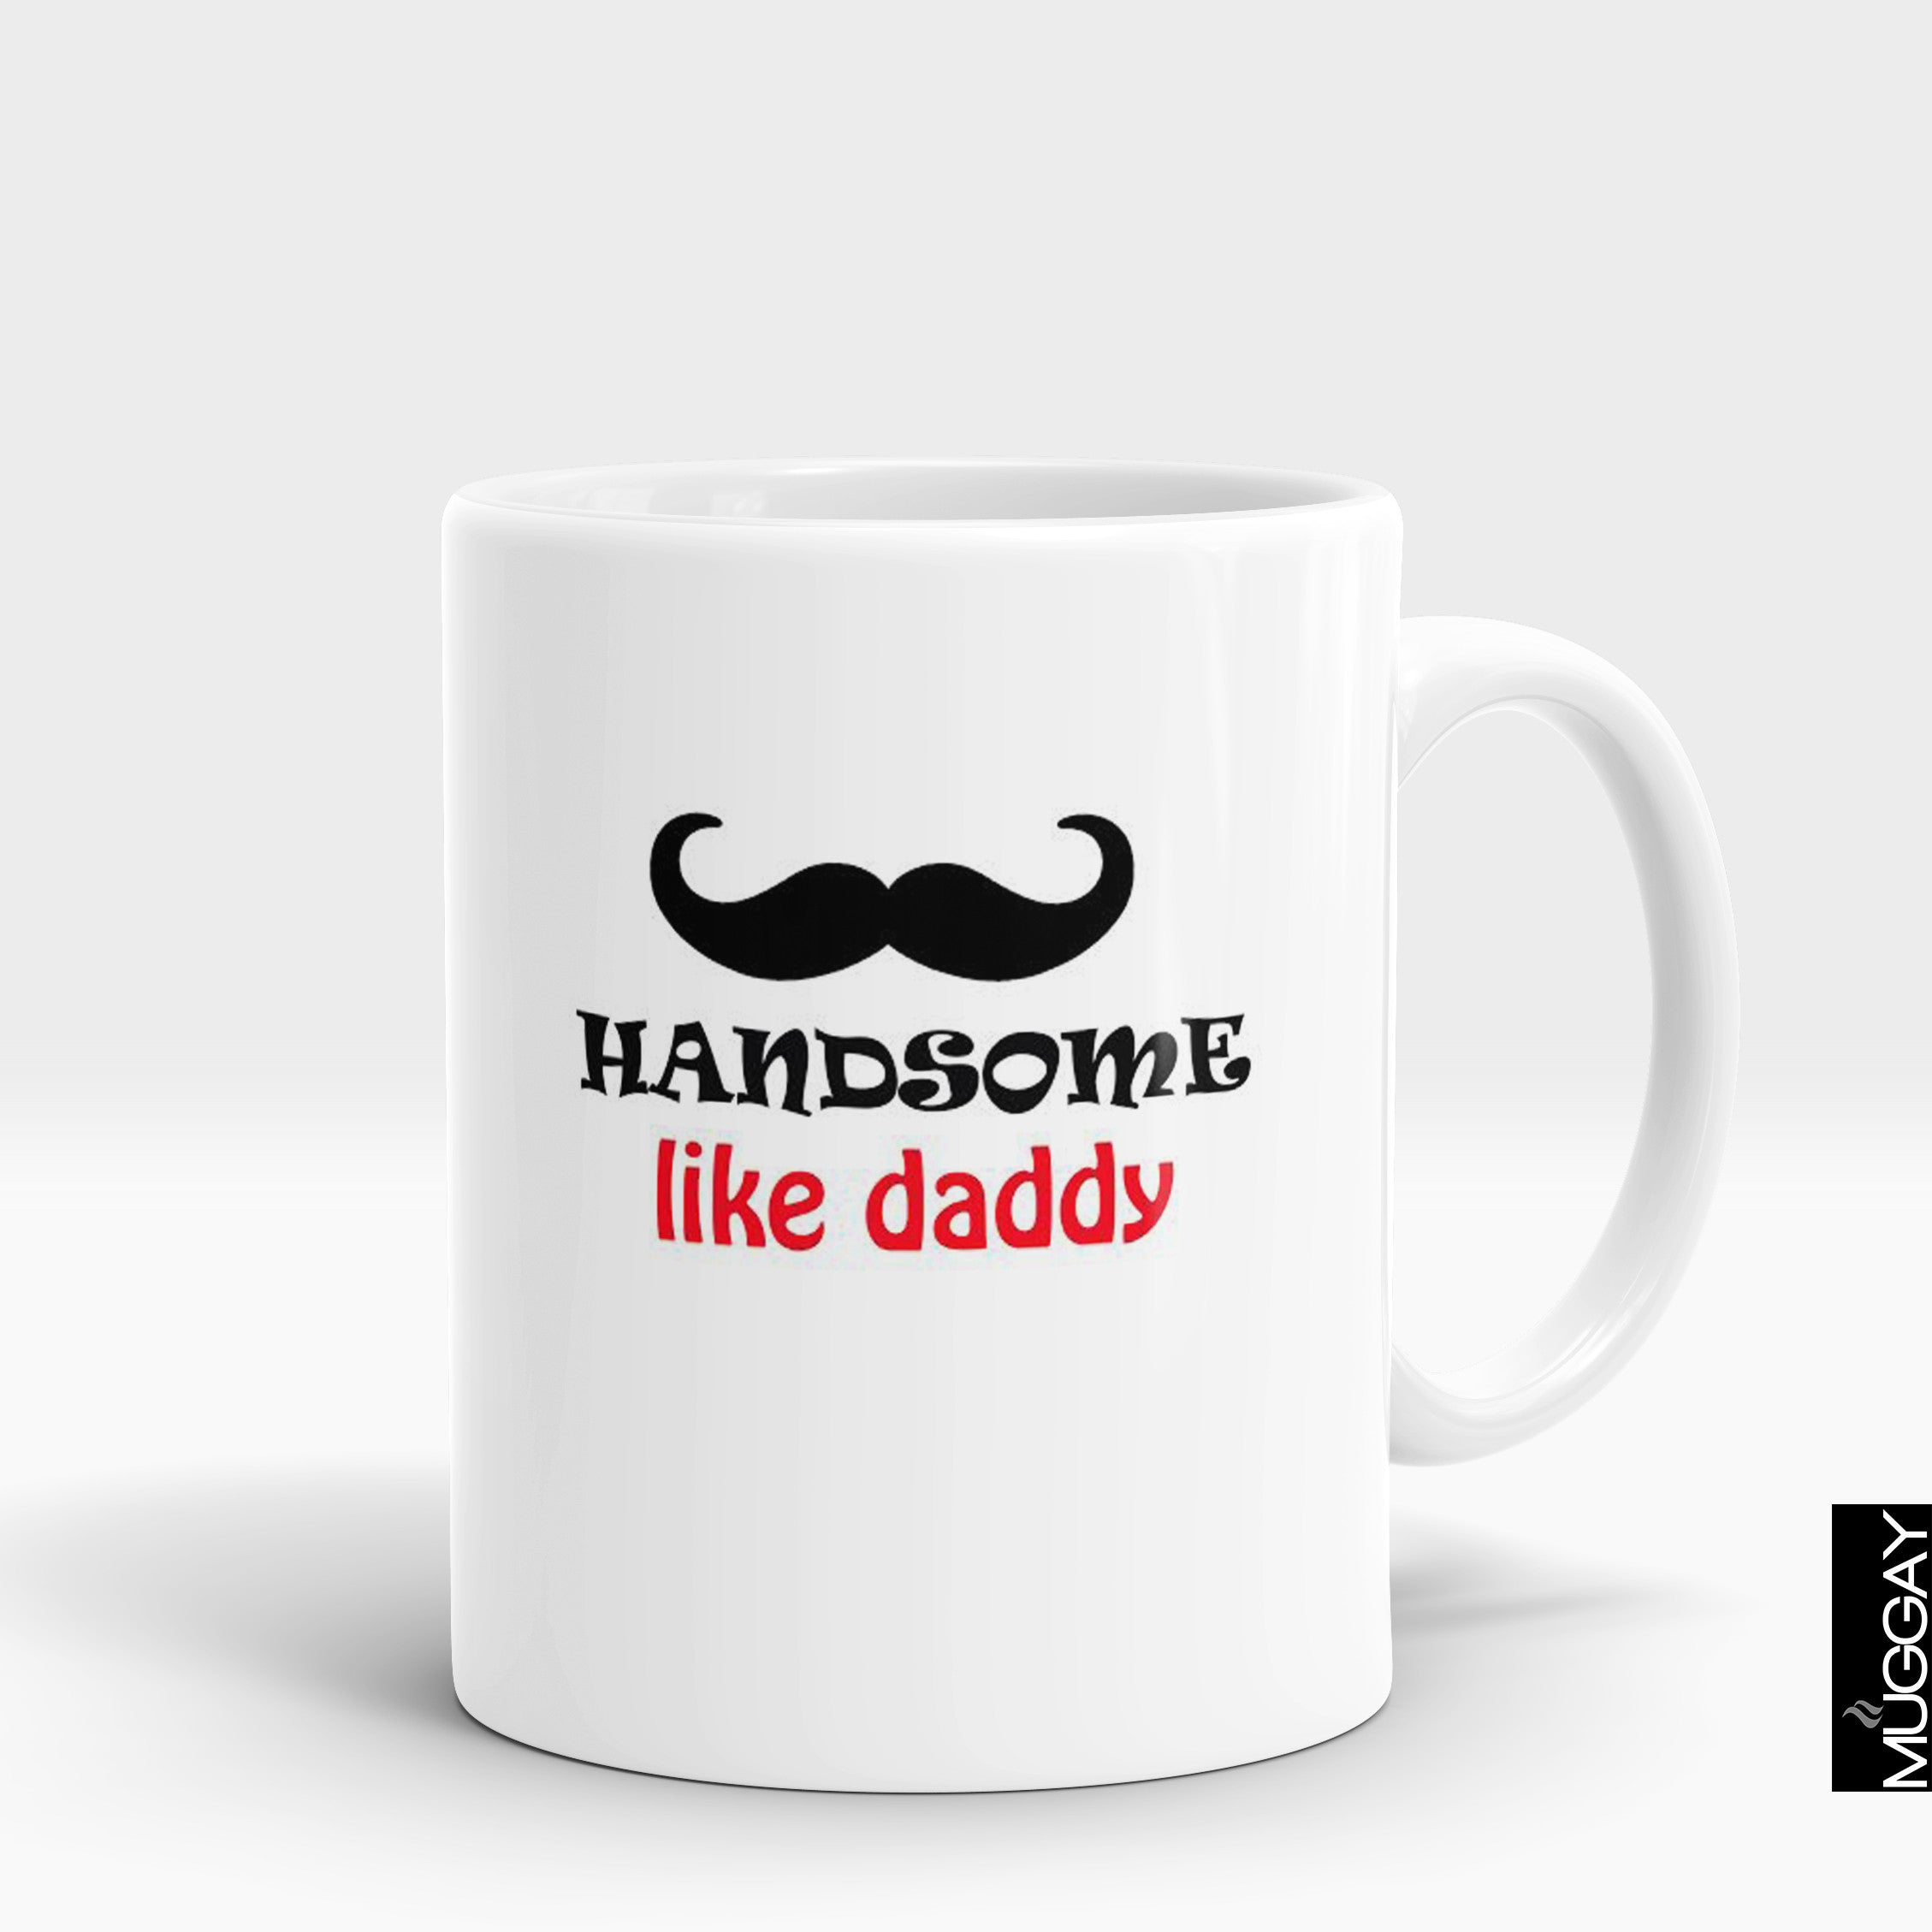 Baby Mug - baby5 - Muggay.com - Mugs - Printing shop - truck Art mugs - Mug printing - Customized printing - Digital printing - Muggay